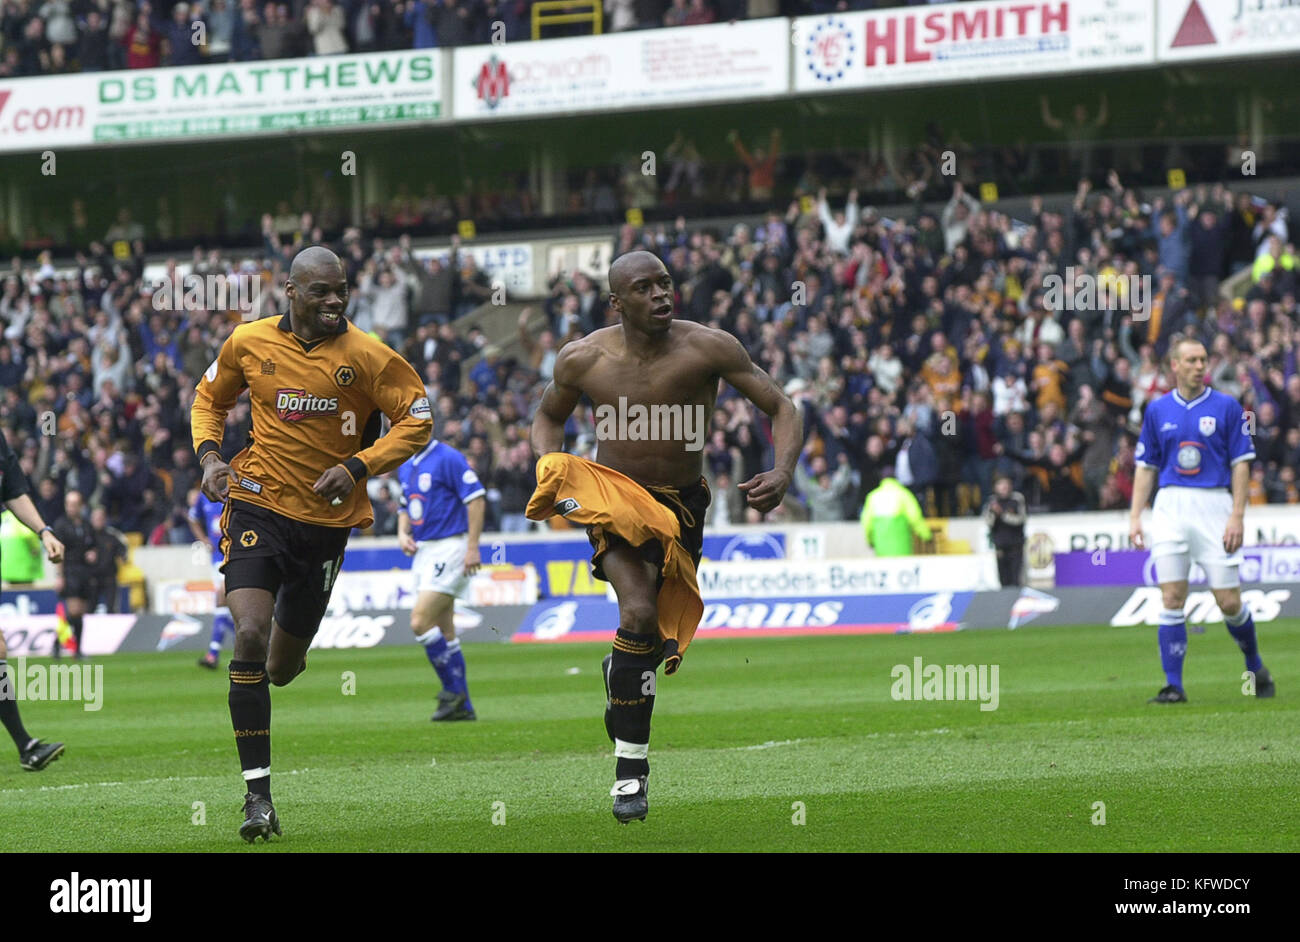 Footballer Shaun Newton celebrating goal Wolverhampton Wanderers v Millwall 19 April 2003 - Stock Image